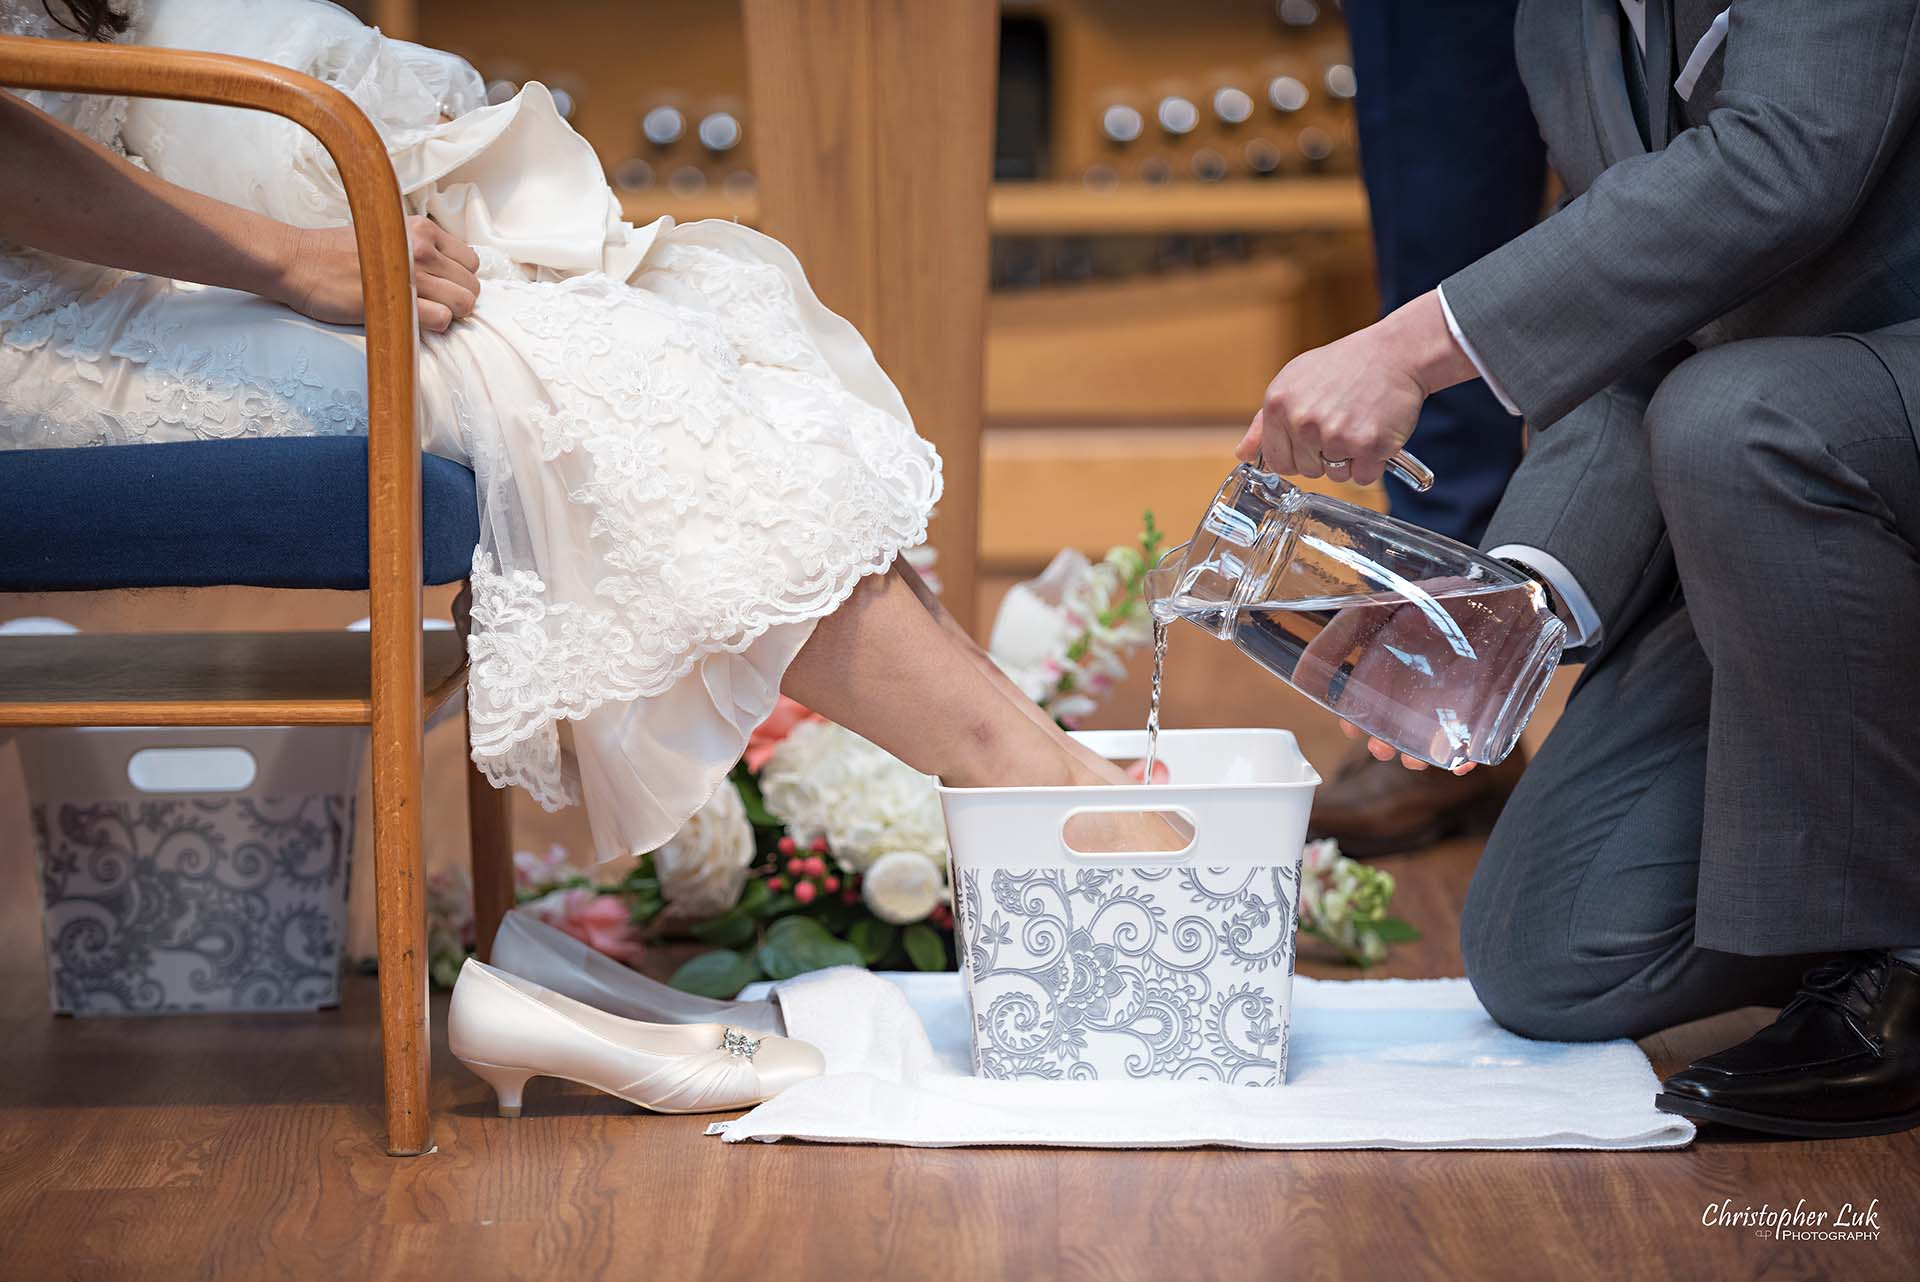 Christopher Luk Toronto Wedding Photographer Trinity York Mills Church Ceremony Sanctuary Candid Natural Photojournalistic Bride Groom Christian Foot Washing Humility Water Pitcher Basin